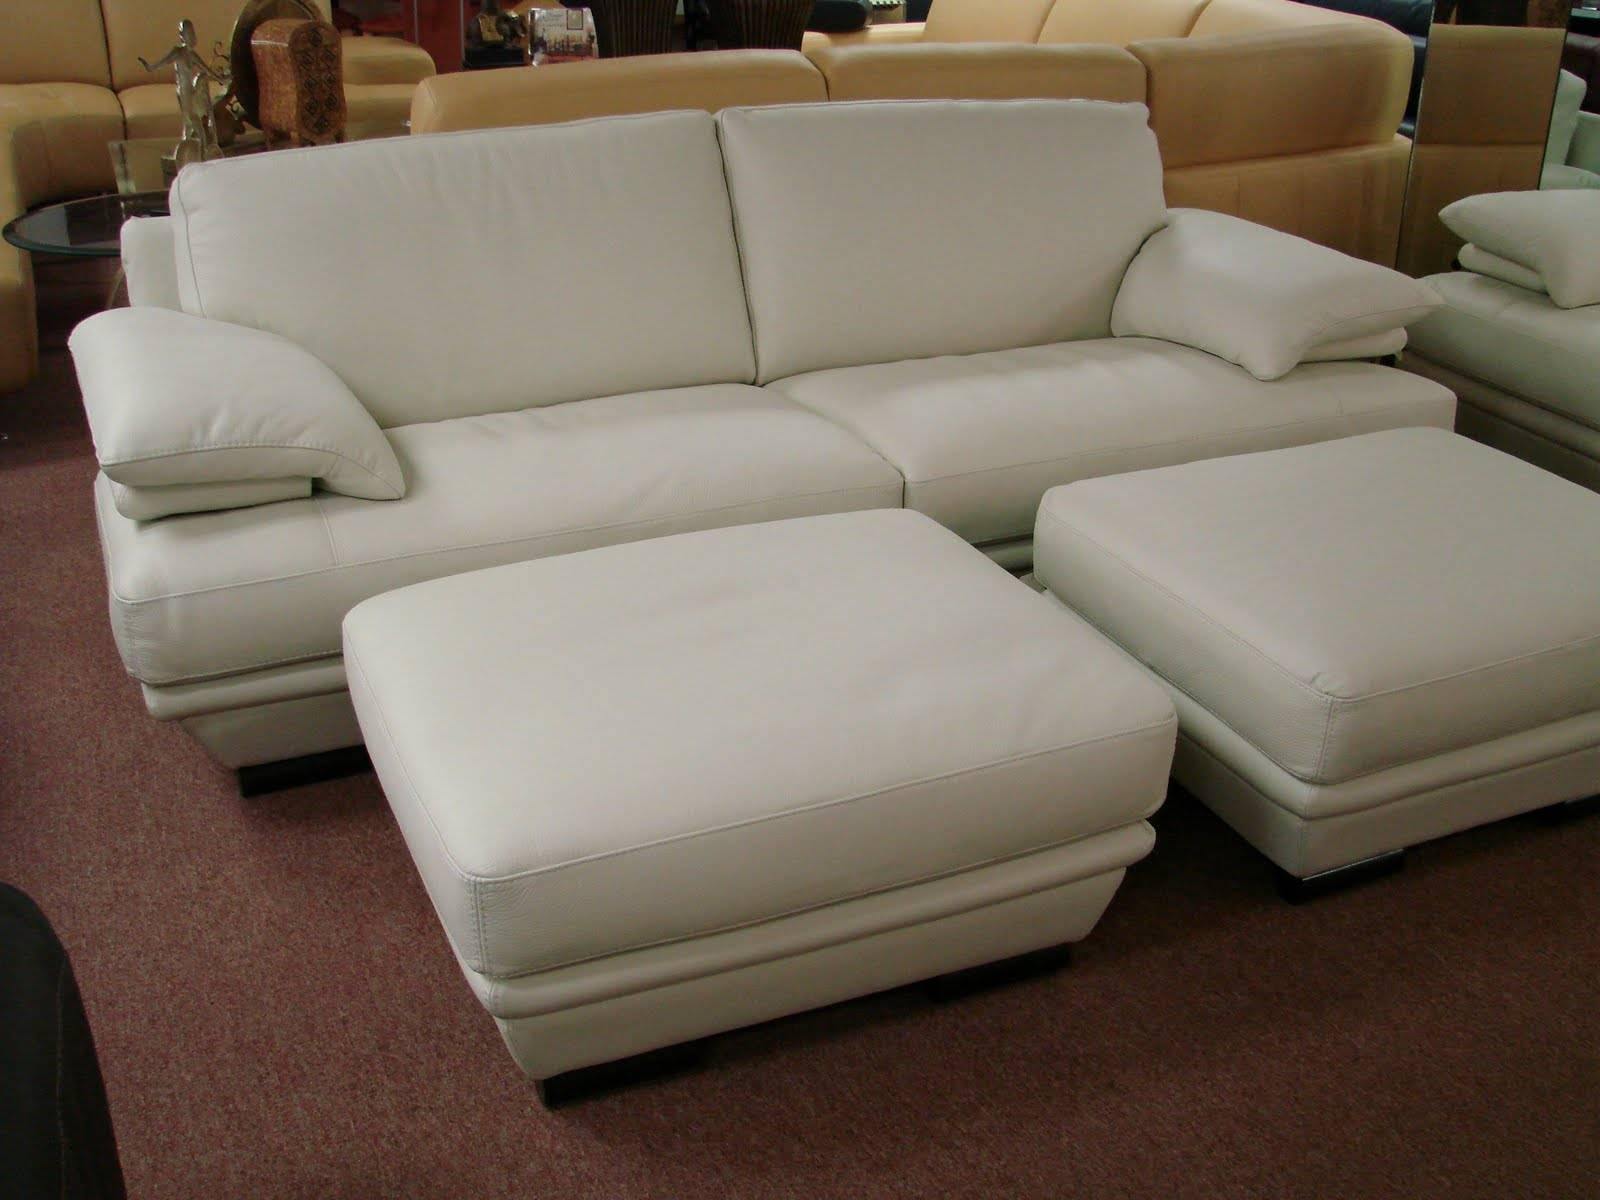 Sofas Center : Bryce White Italian Leatherofa And Loveseat intended for Off White Leather Sofa And Loveseat (Image 19 of 30)